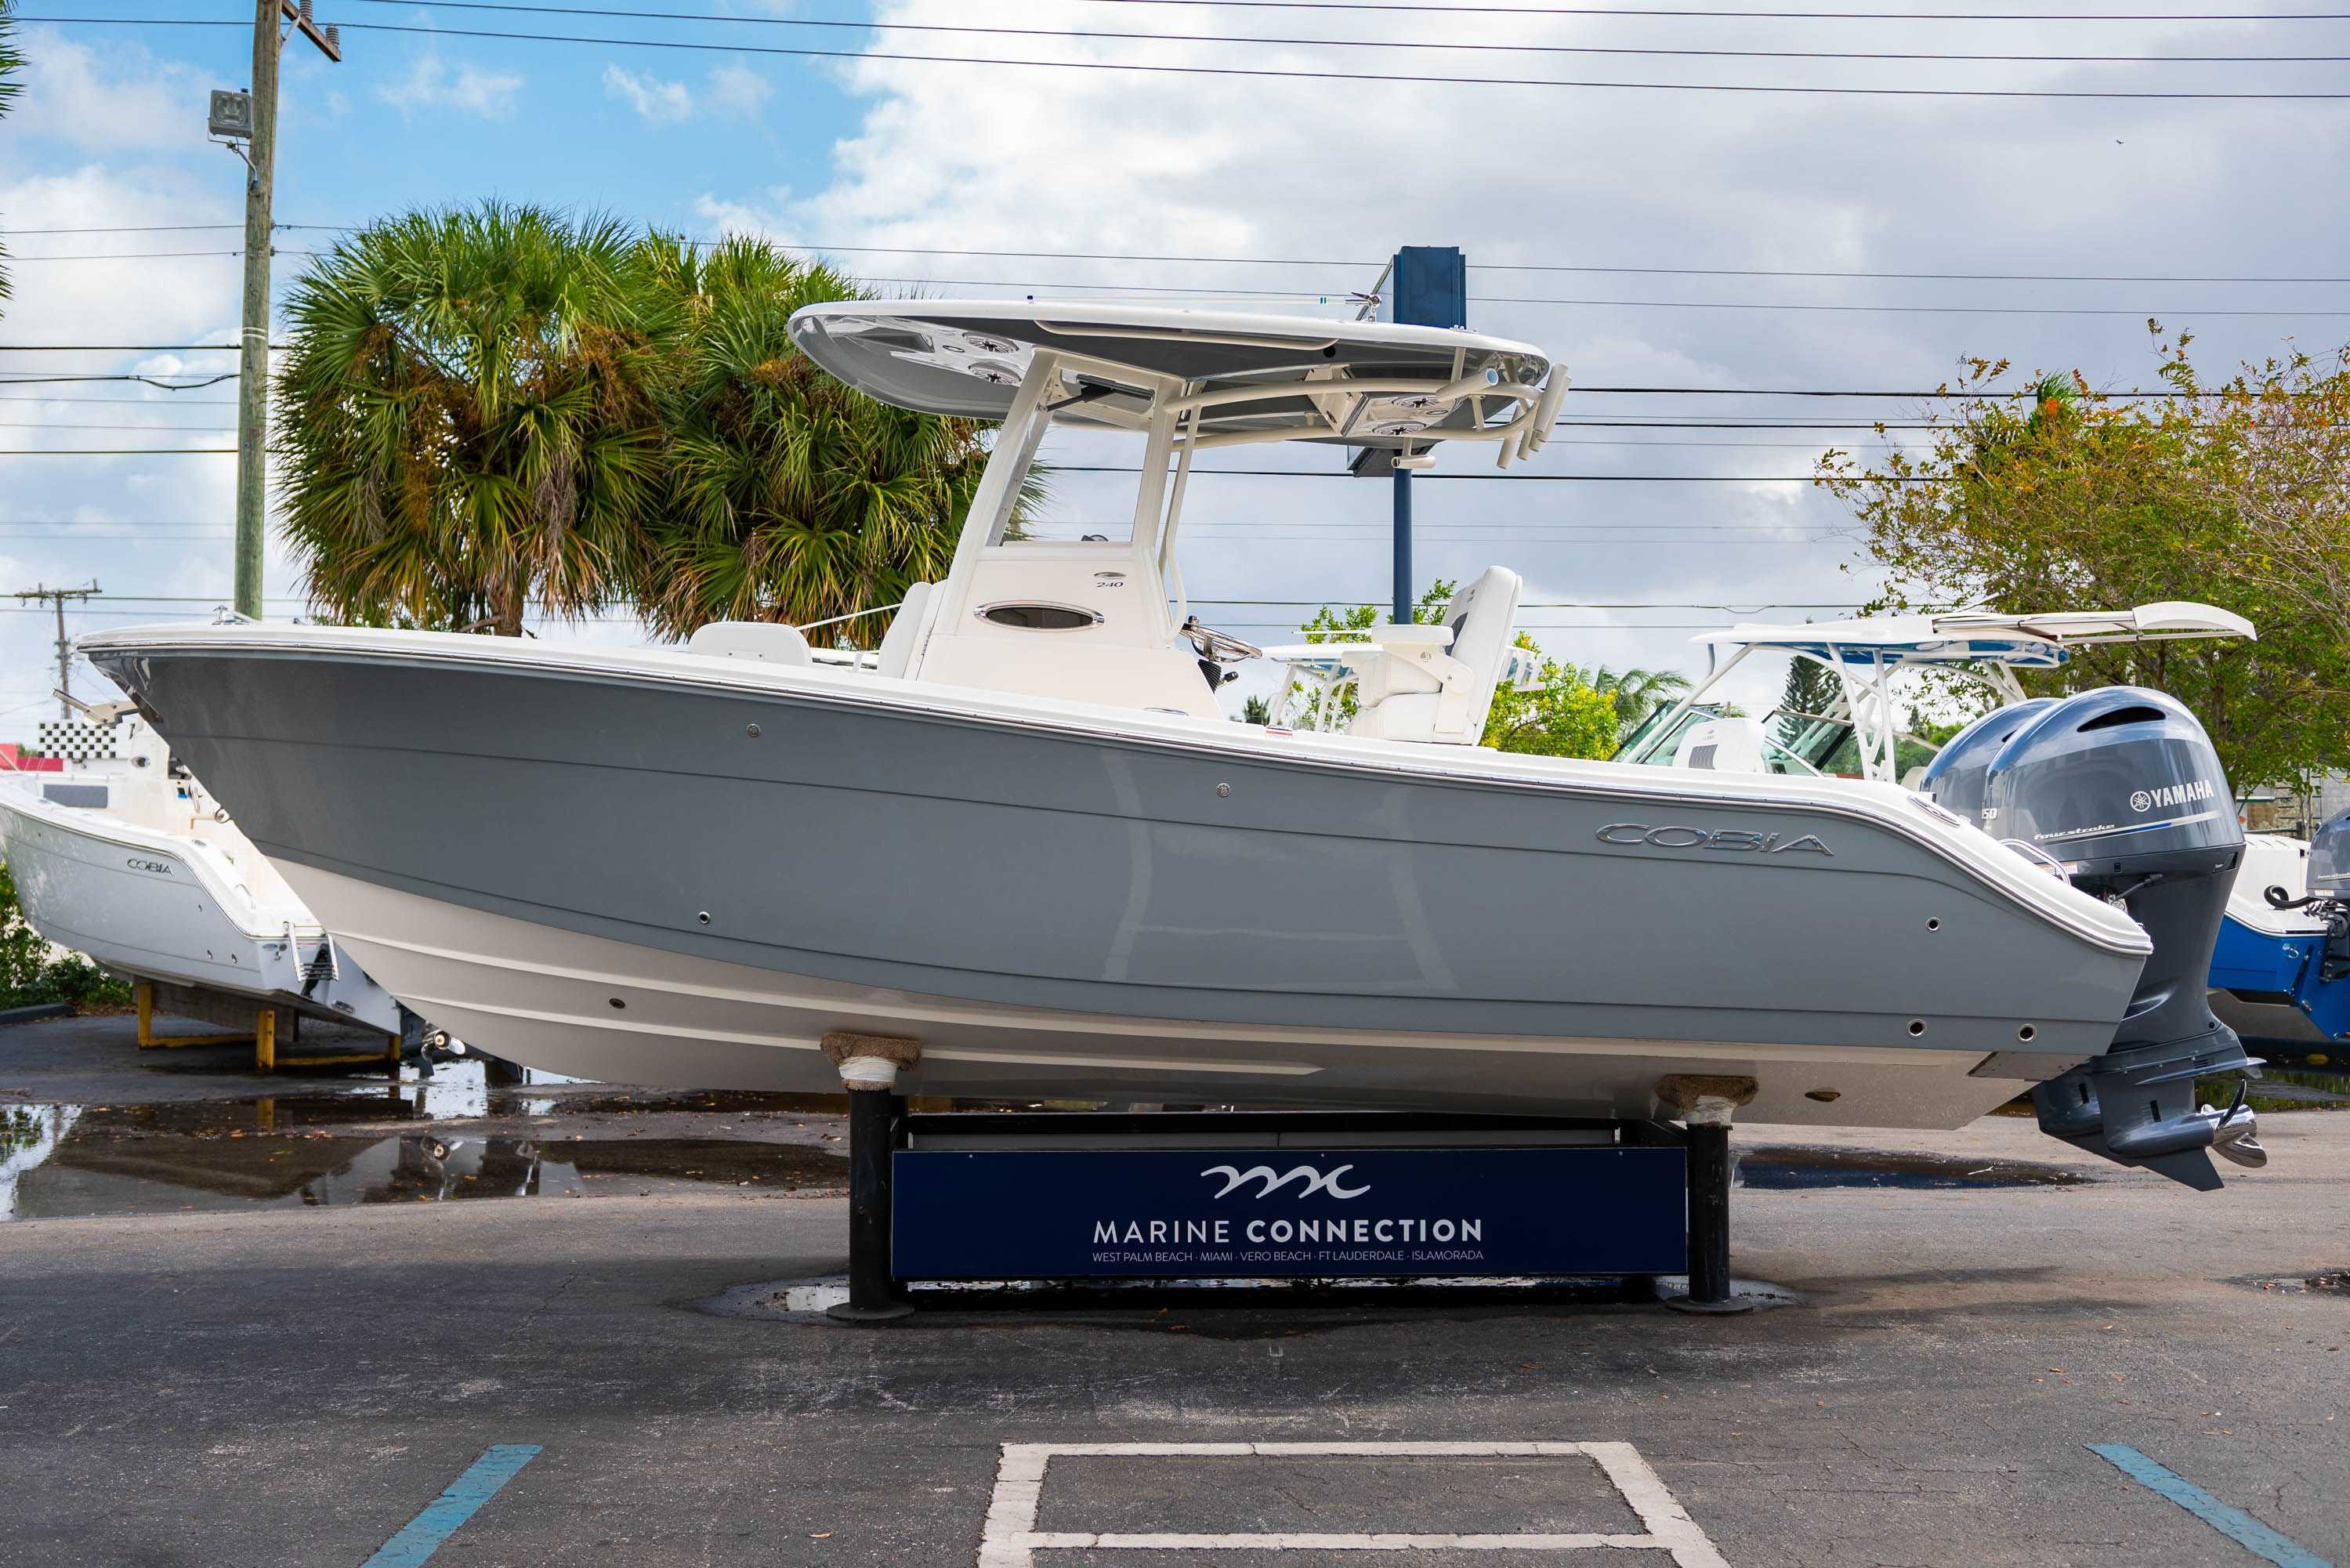 Thumbnail 4 for New 2020 Cobia 240 CC Center Console boat for sale in West Palm Beach, FL